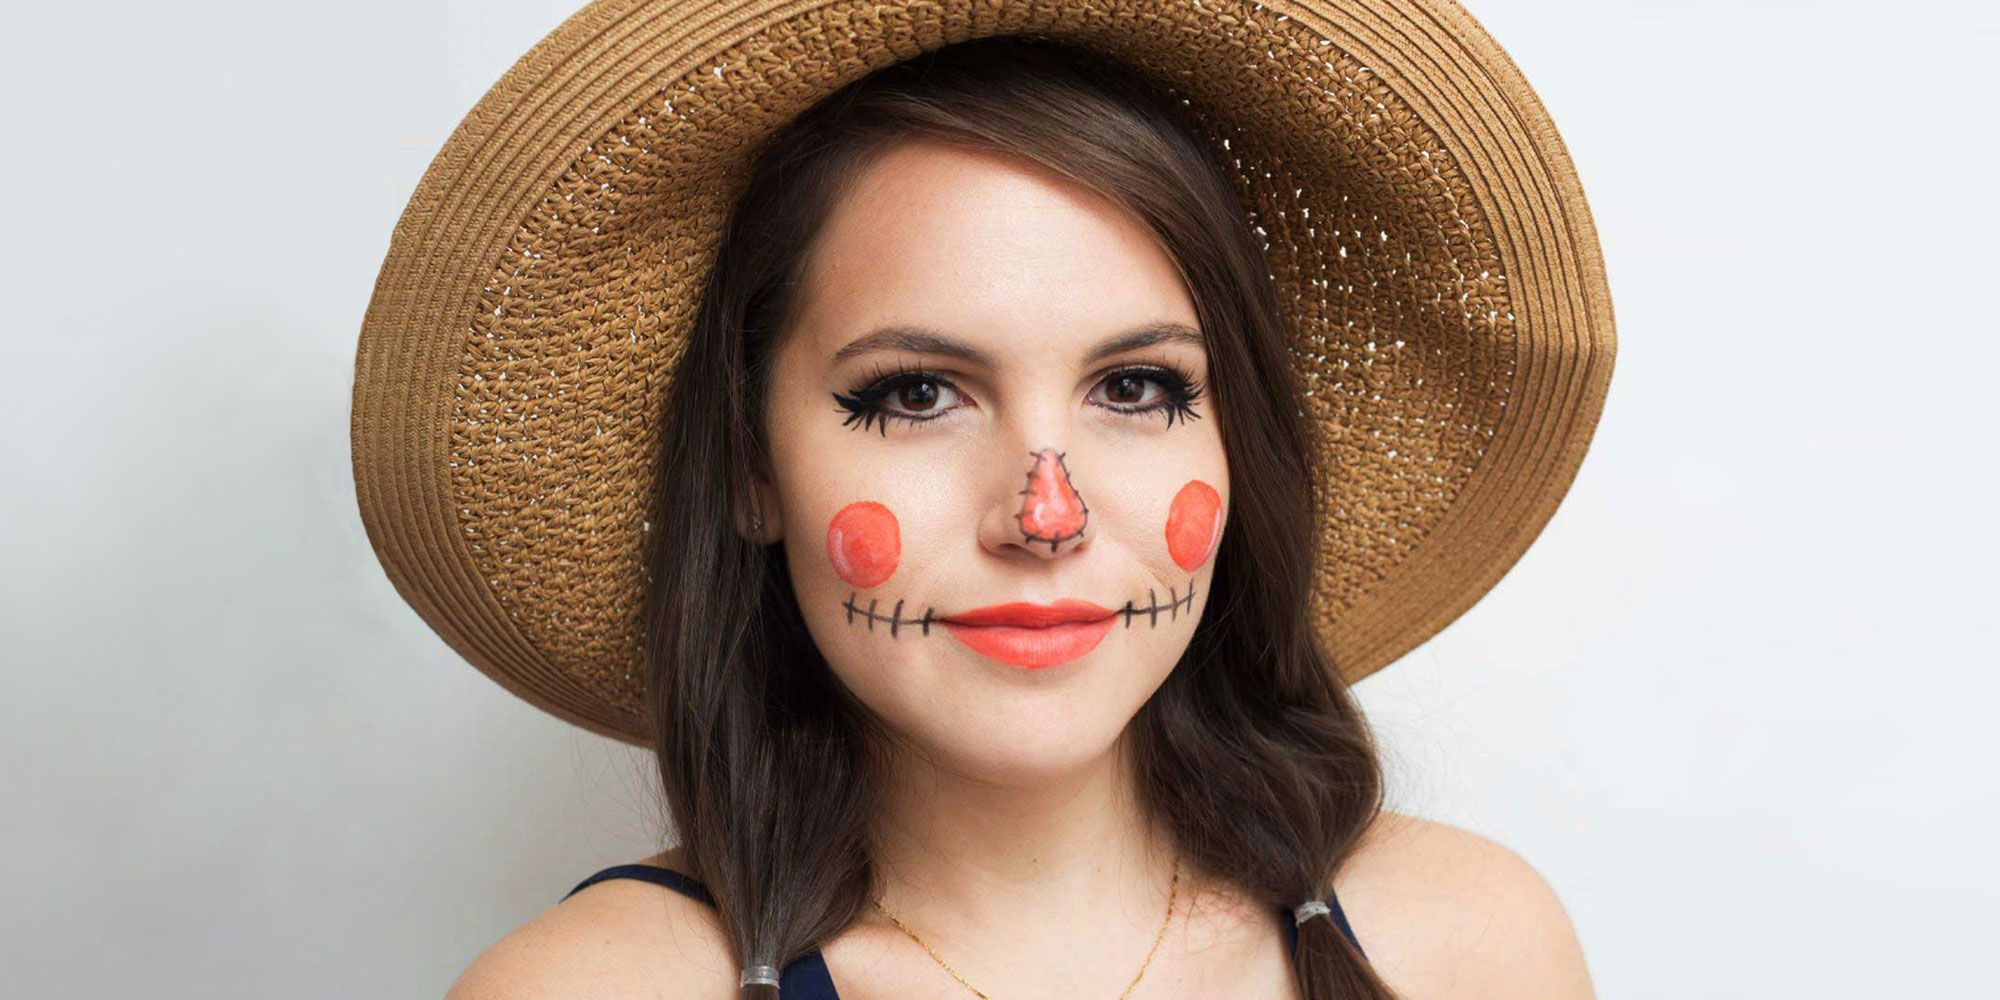 This Scarecrow Halloween Makeup Tutorial Is So Freaking Cute